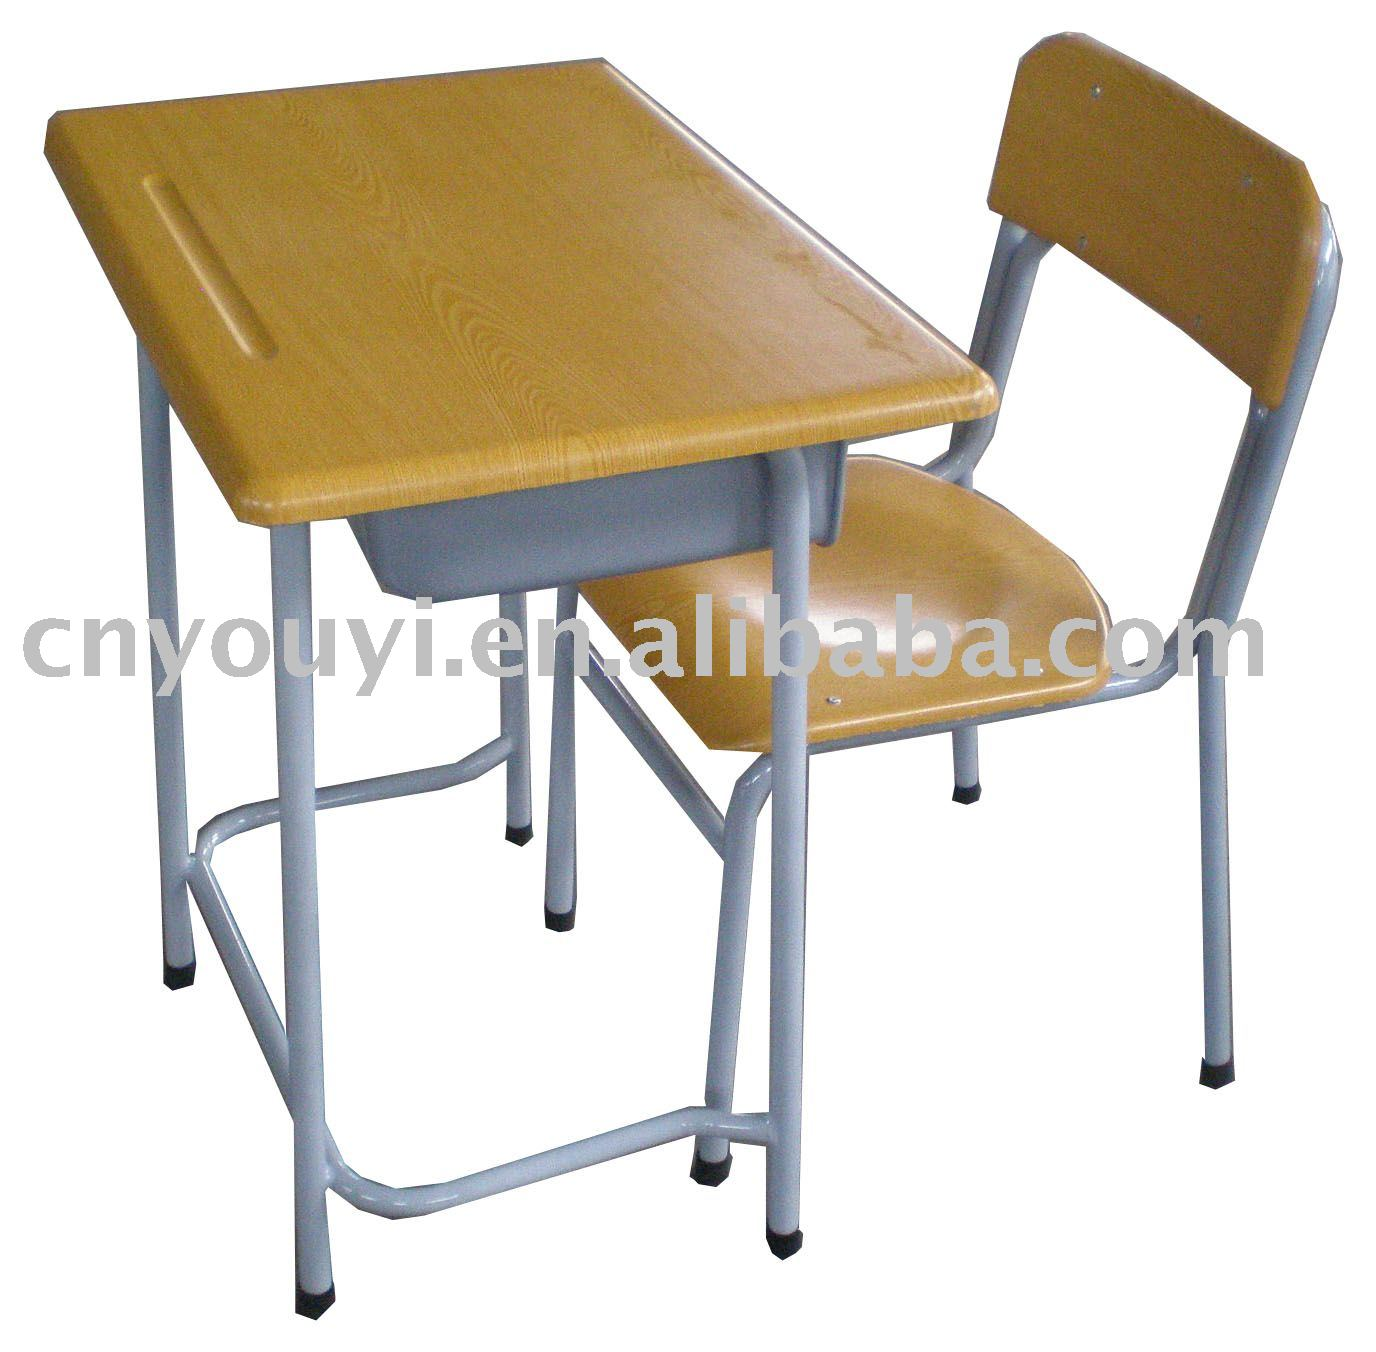 Cheap Classroom Single Desk and Chair School writing table with book drawer for student furniture